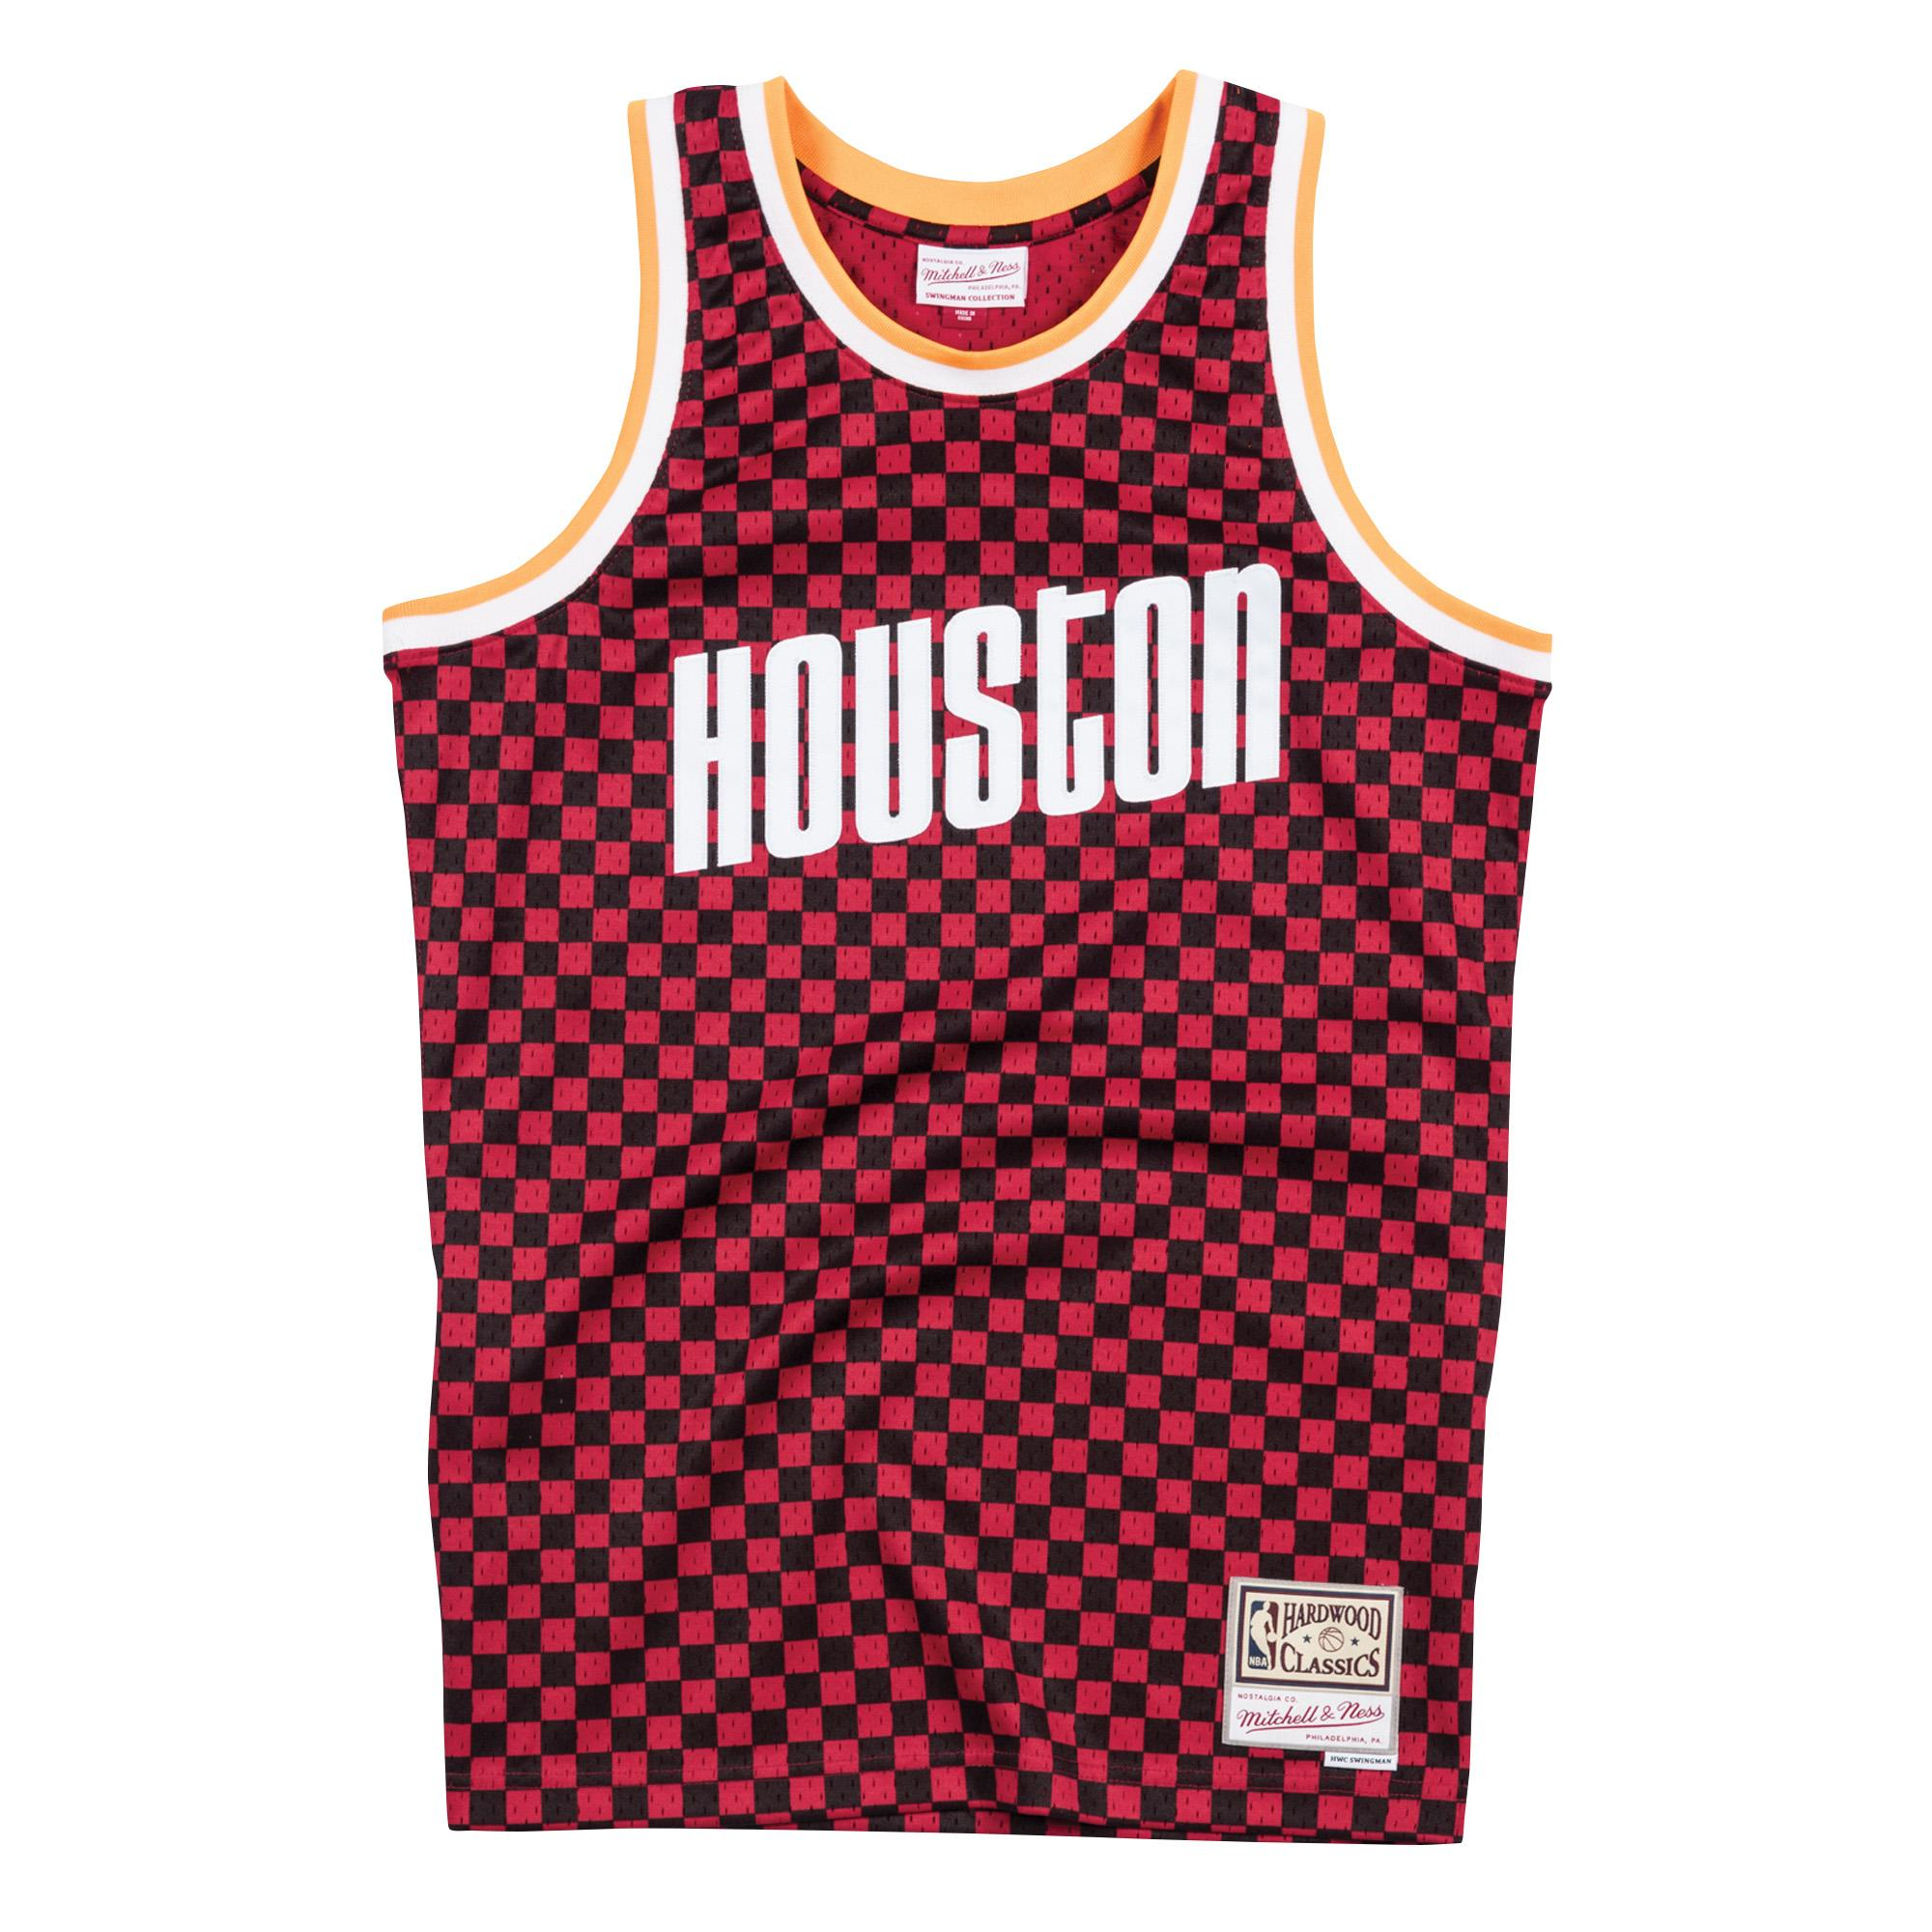 separation shoes f4aae a3a27 Mitchell & Ness | Houston Rockets Black & Red Checkered ...